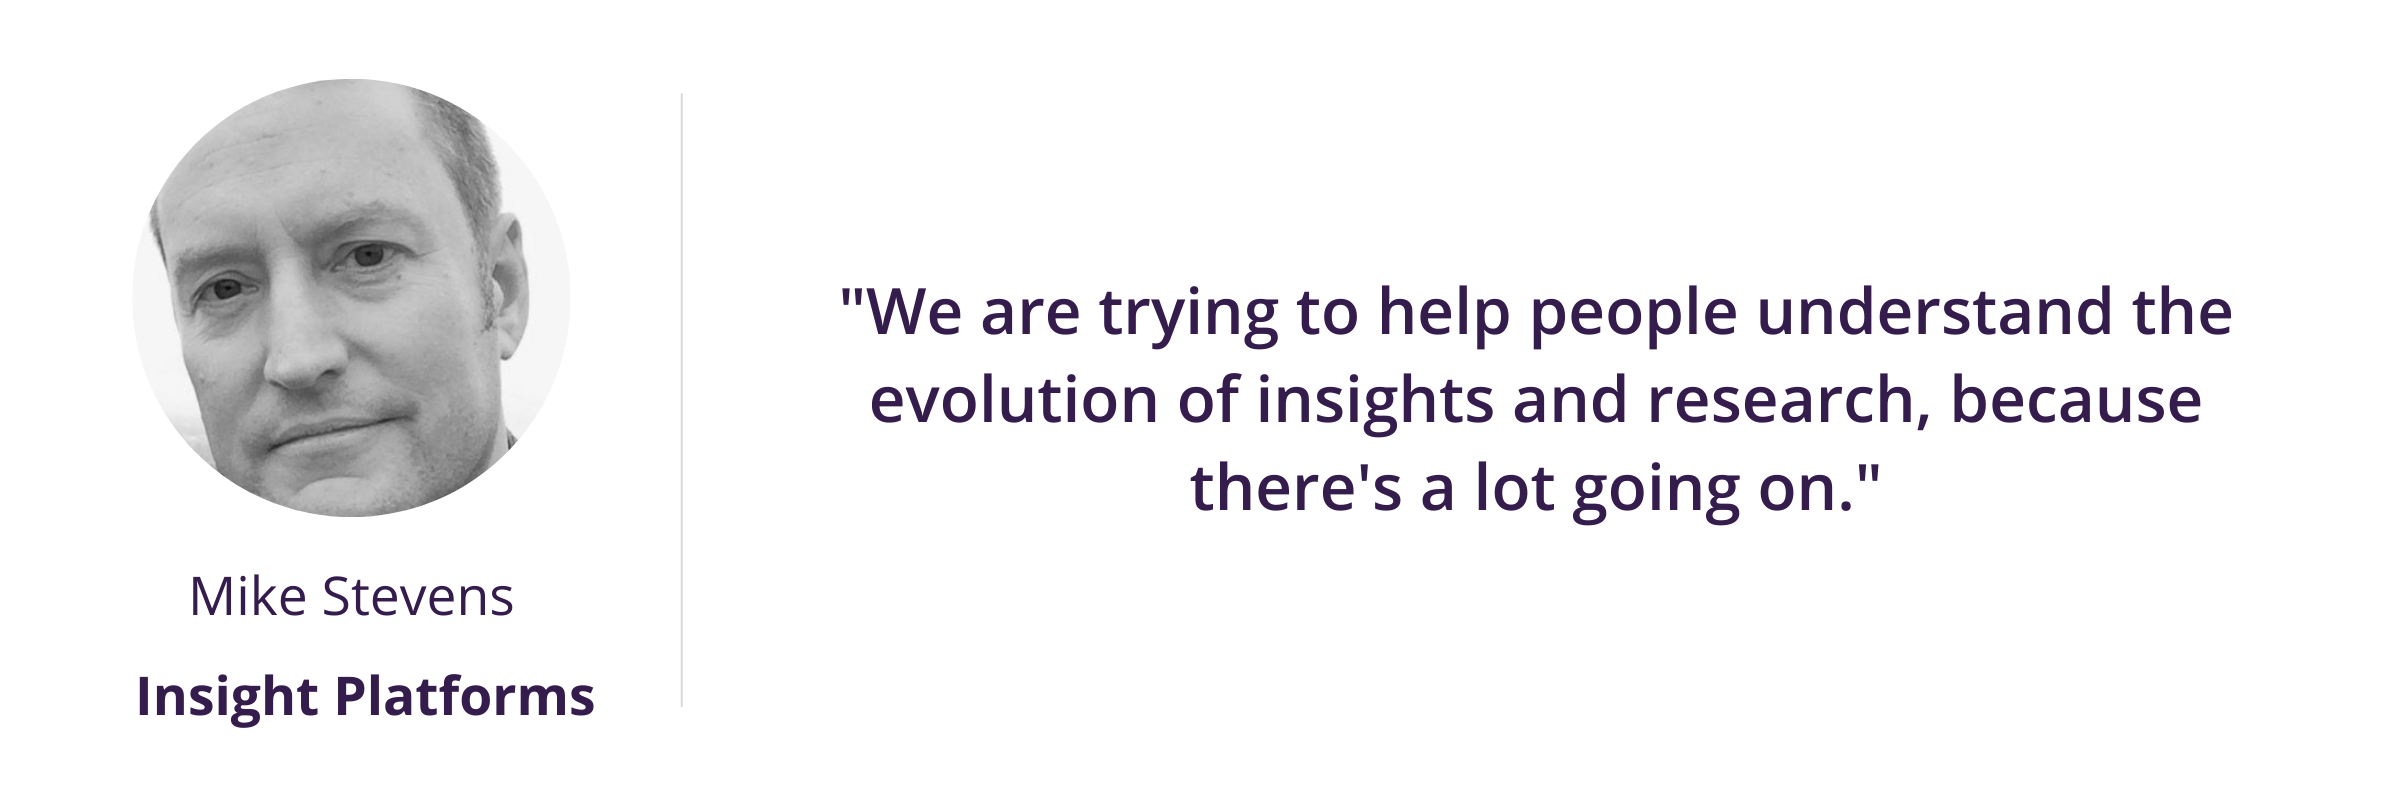 """""""We are trying to help people understand the evolution of insights and research, because there's a lot going on."""""""